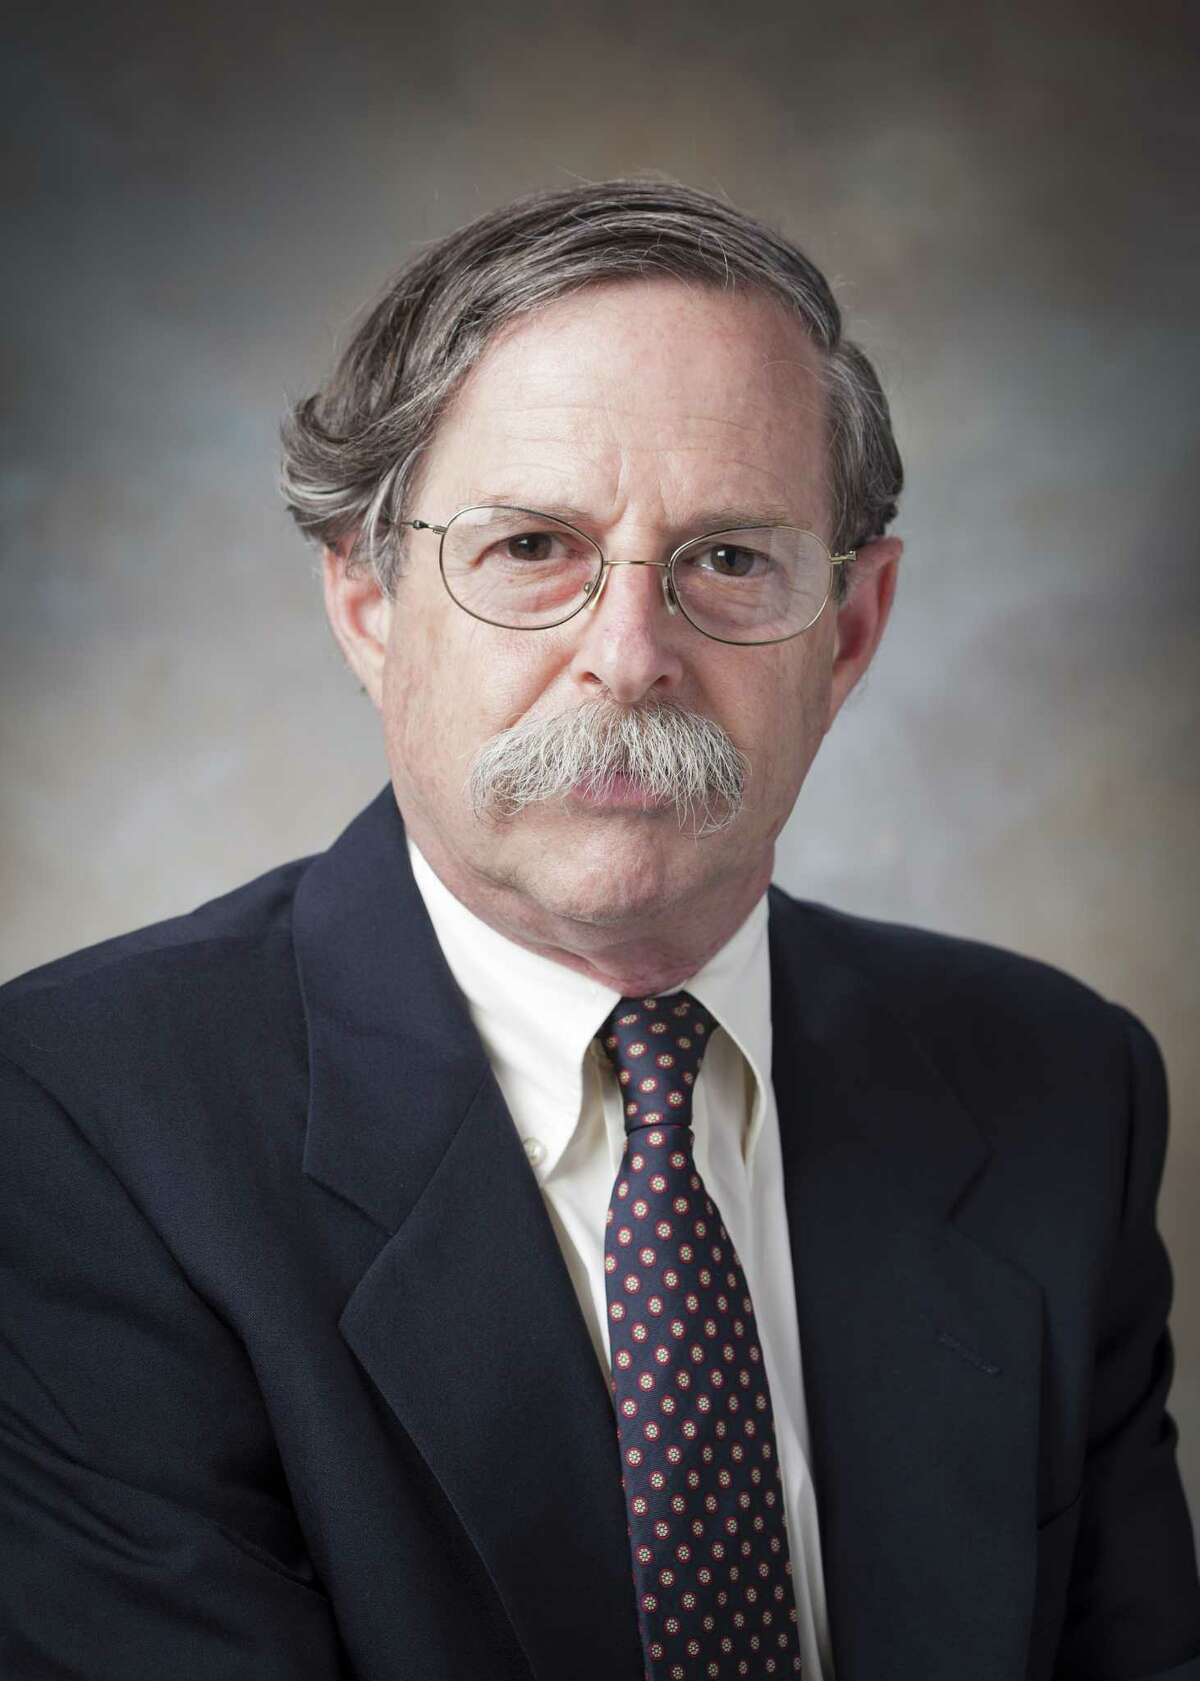 Dr. Arthur L. Horwich, Sterling Professor of Genetics and Pediatrics and Investigator, Howard Hughes Medical Institute, Yale University School of Medicine, New Haven, Conn., is one of the winners of the Albany Medical Center Prize for 2016. (Provided photo)